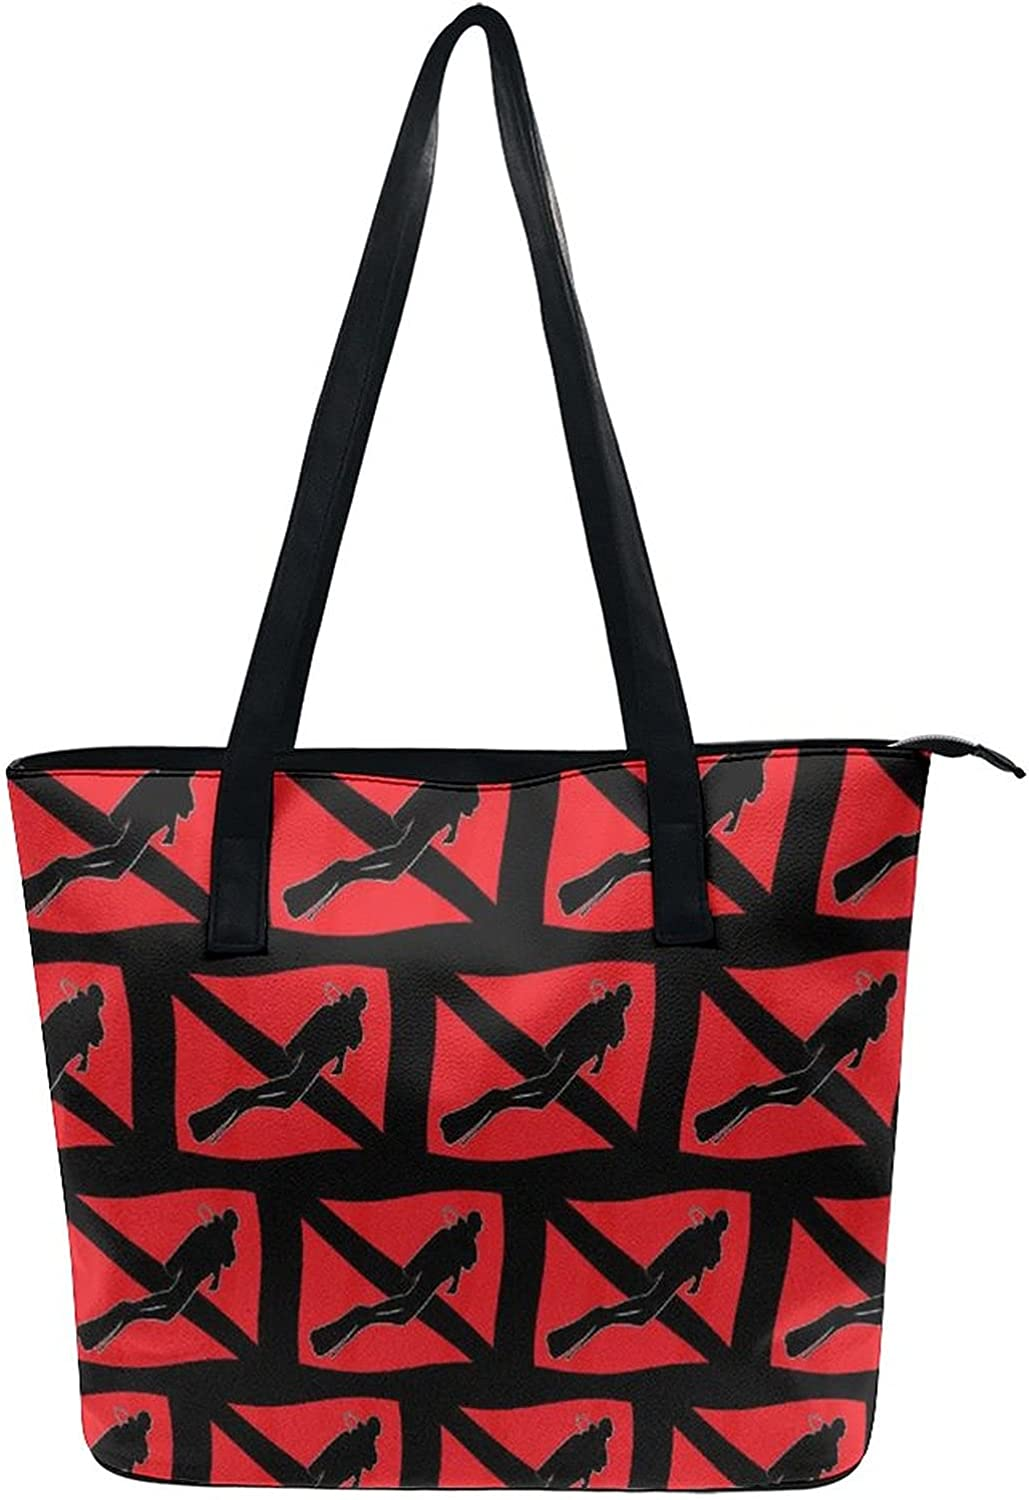 Satchel Shoulder Bags Beach Tote Bag Women OFFer Large Max 72% OFF For Lady Capaci